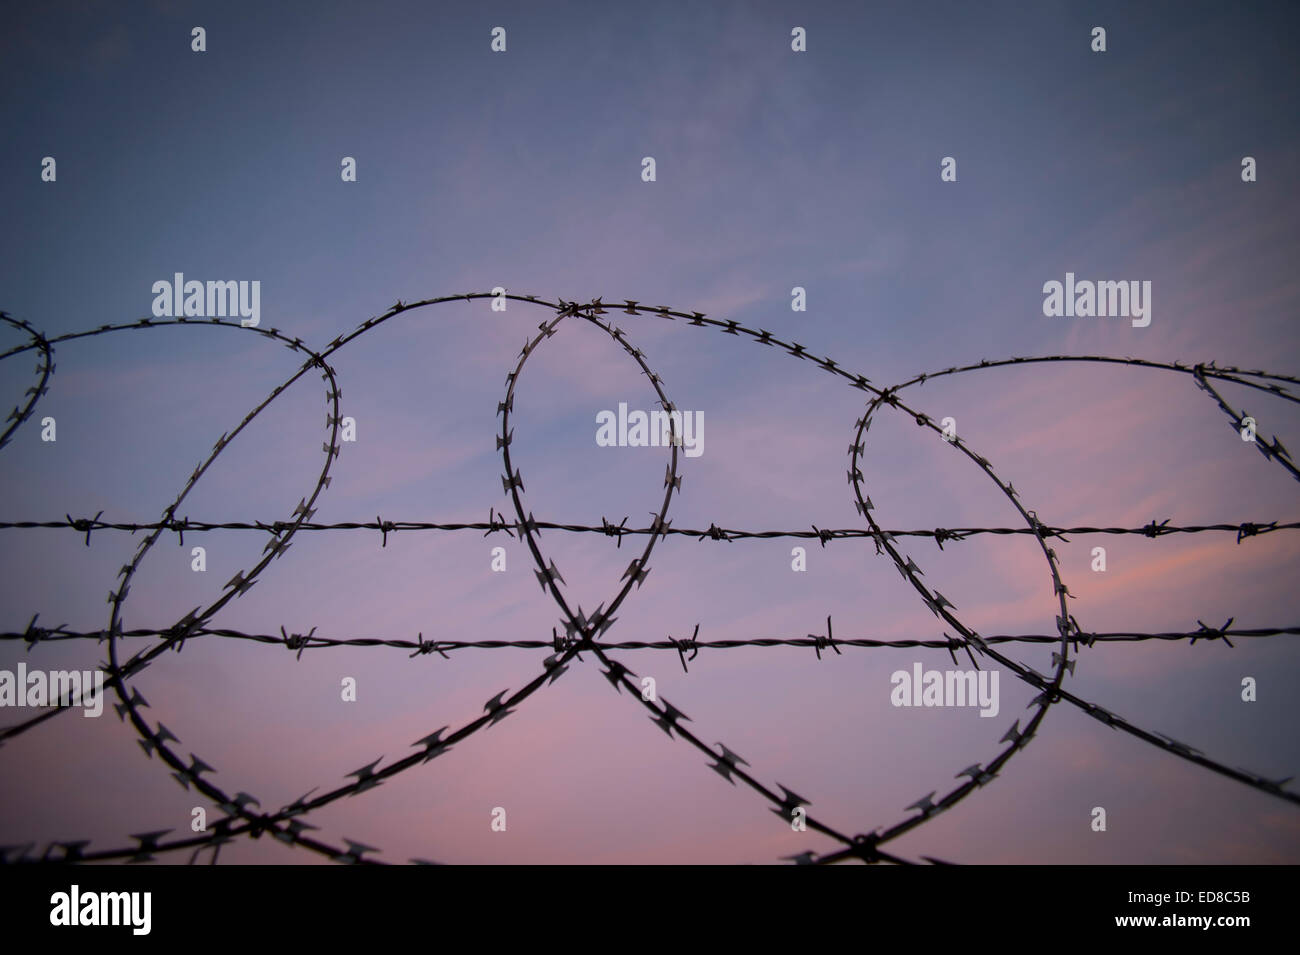 barbed wire, razor wire security fence - Stock Image